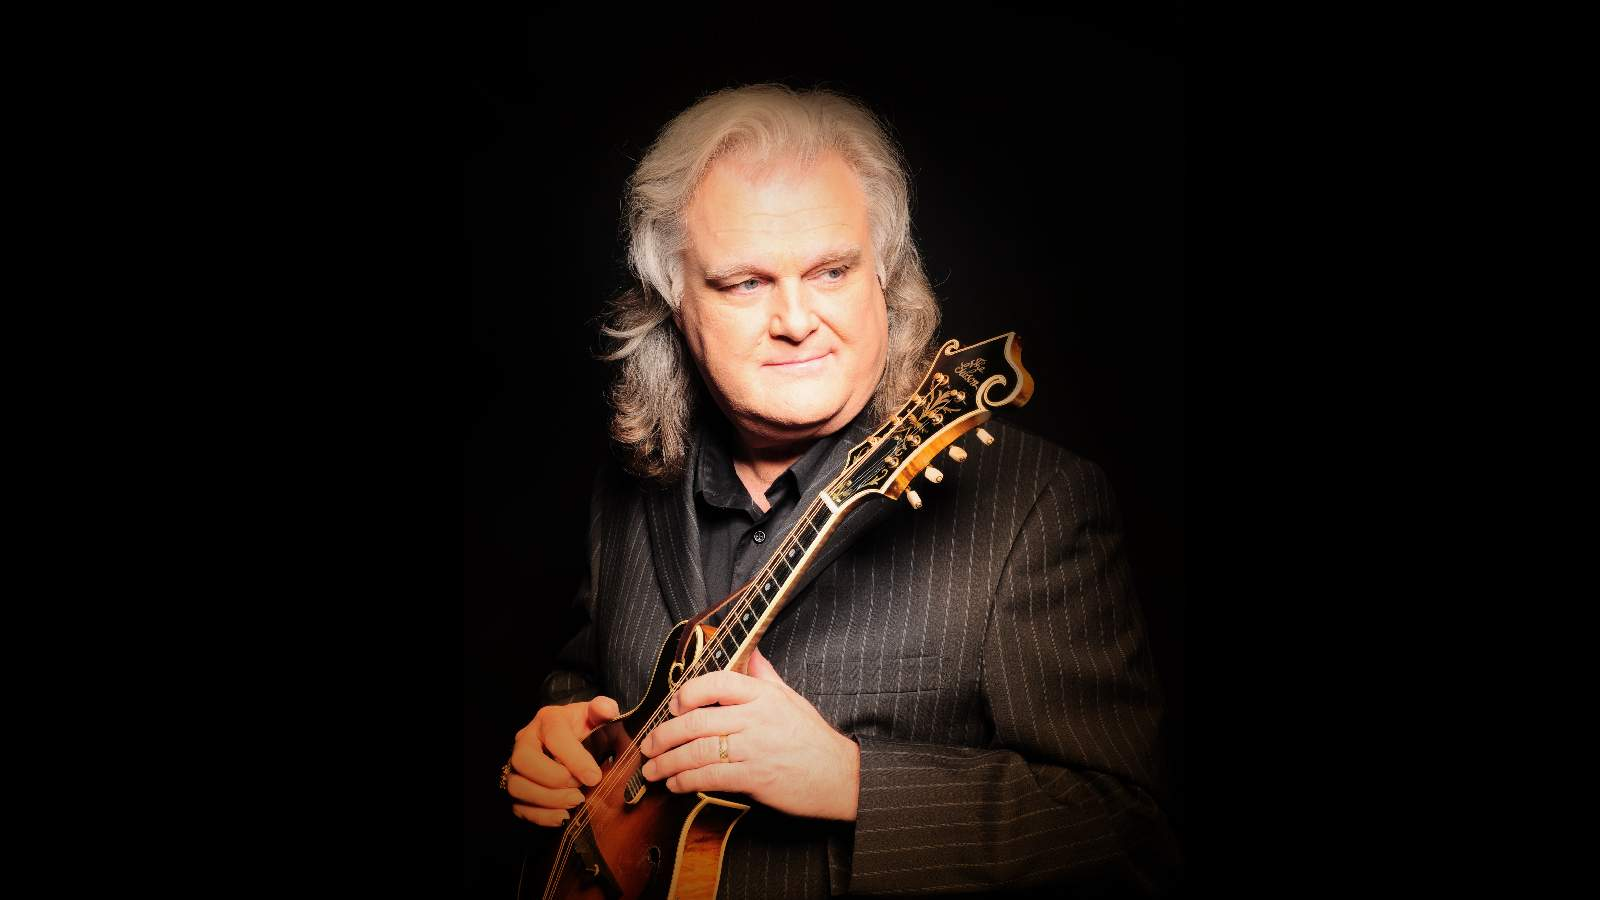 Ricky Skaggs (Rescheduled from 4/3/2020, 8/21/2020)